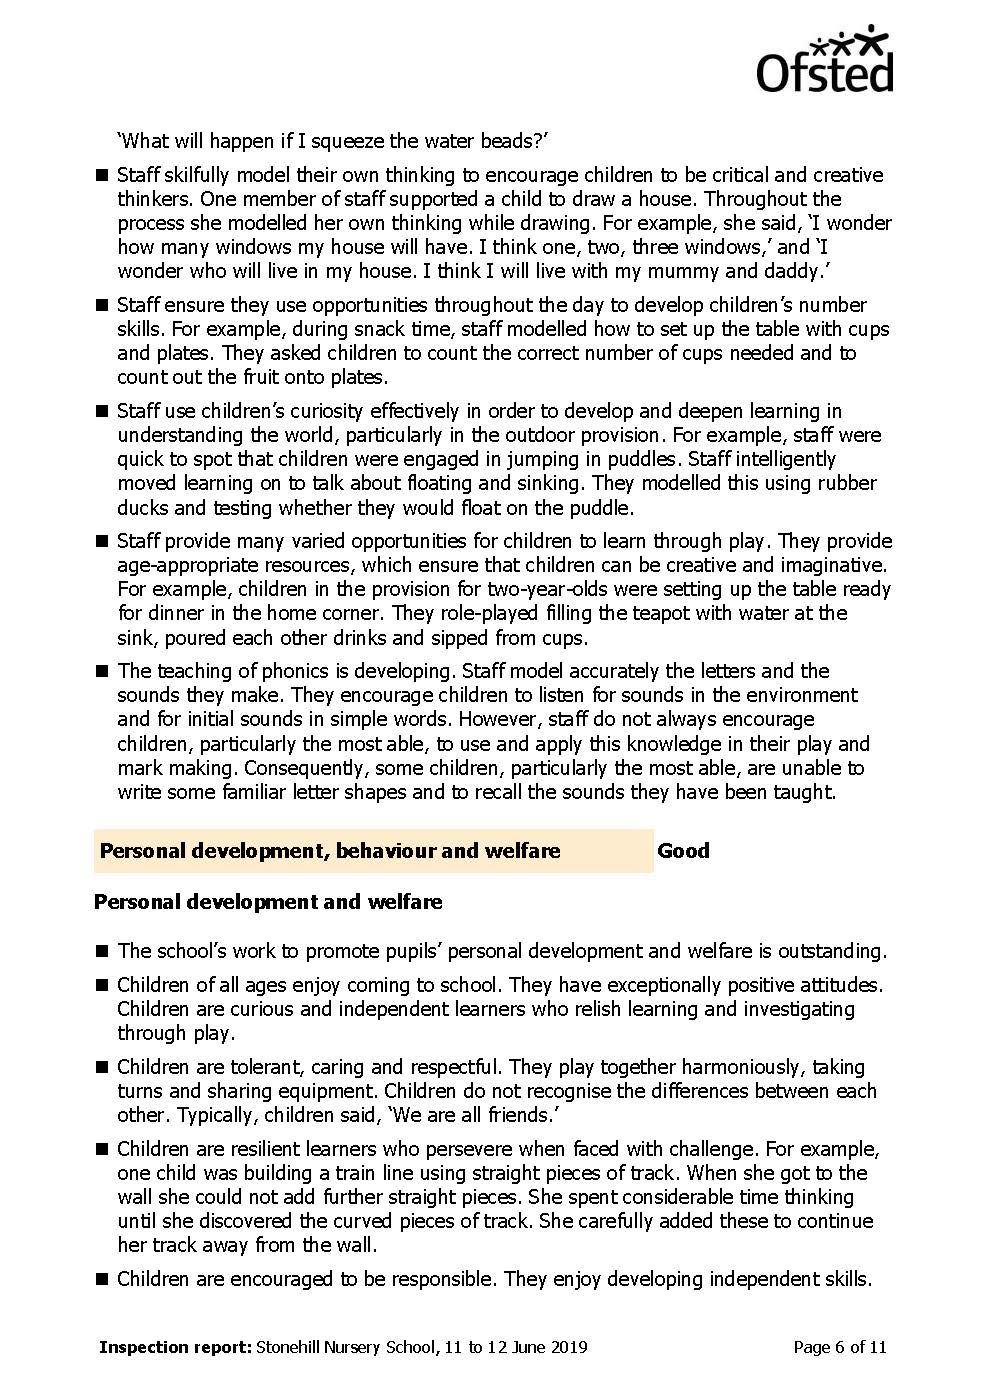 Stonehill OFSTED Report 2019_Page_06.jpg